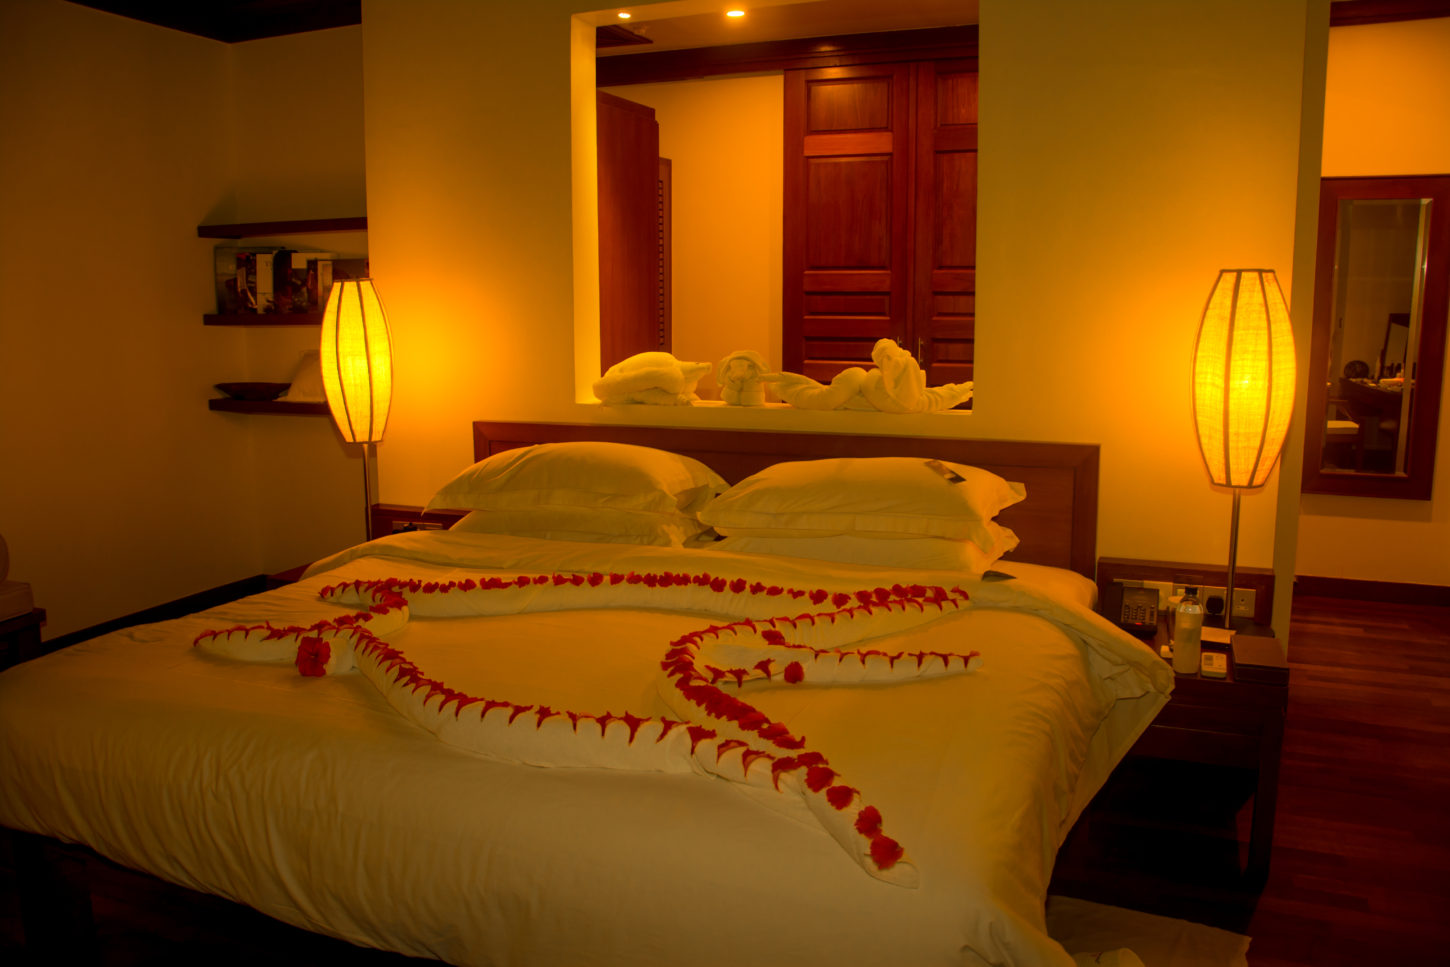 lifestyle redesign  - dsc 0671 - Anantara Dhigu Resort - My Sunset Beach Villa Maldives Part 2!